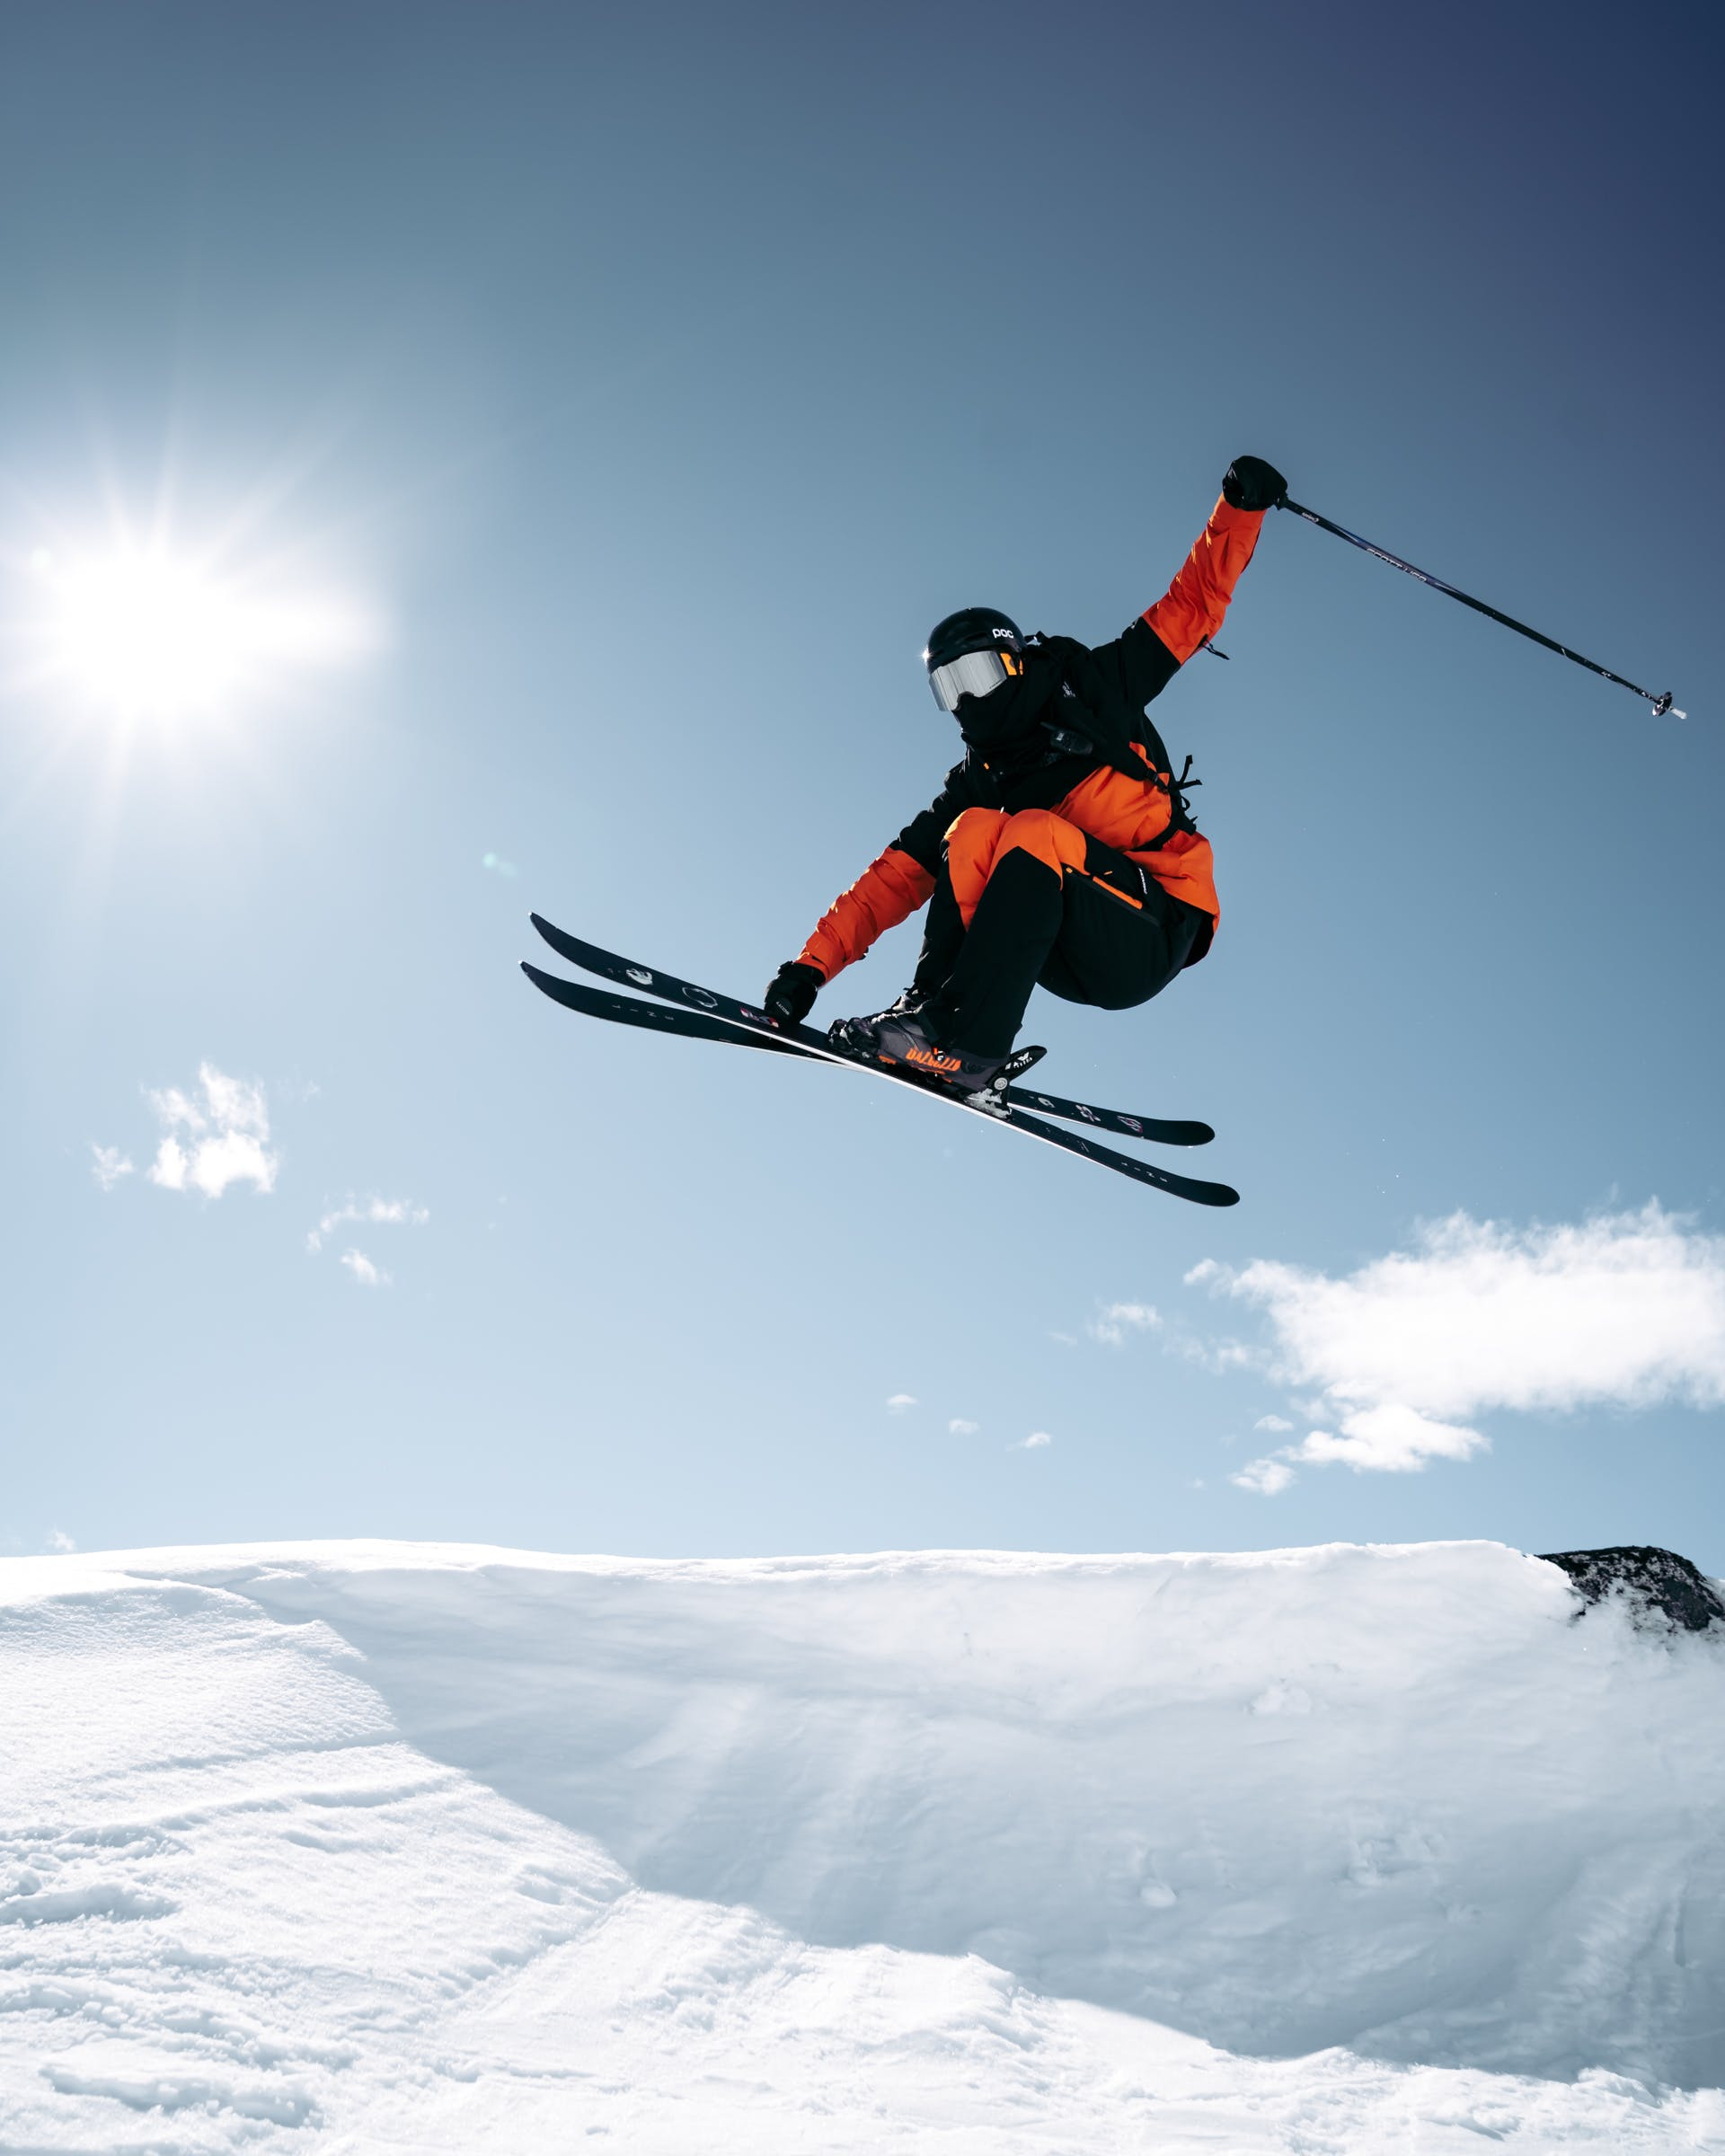 How to do shifty on skis